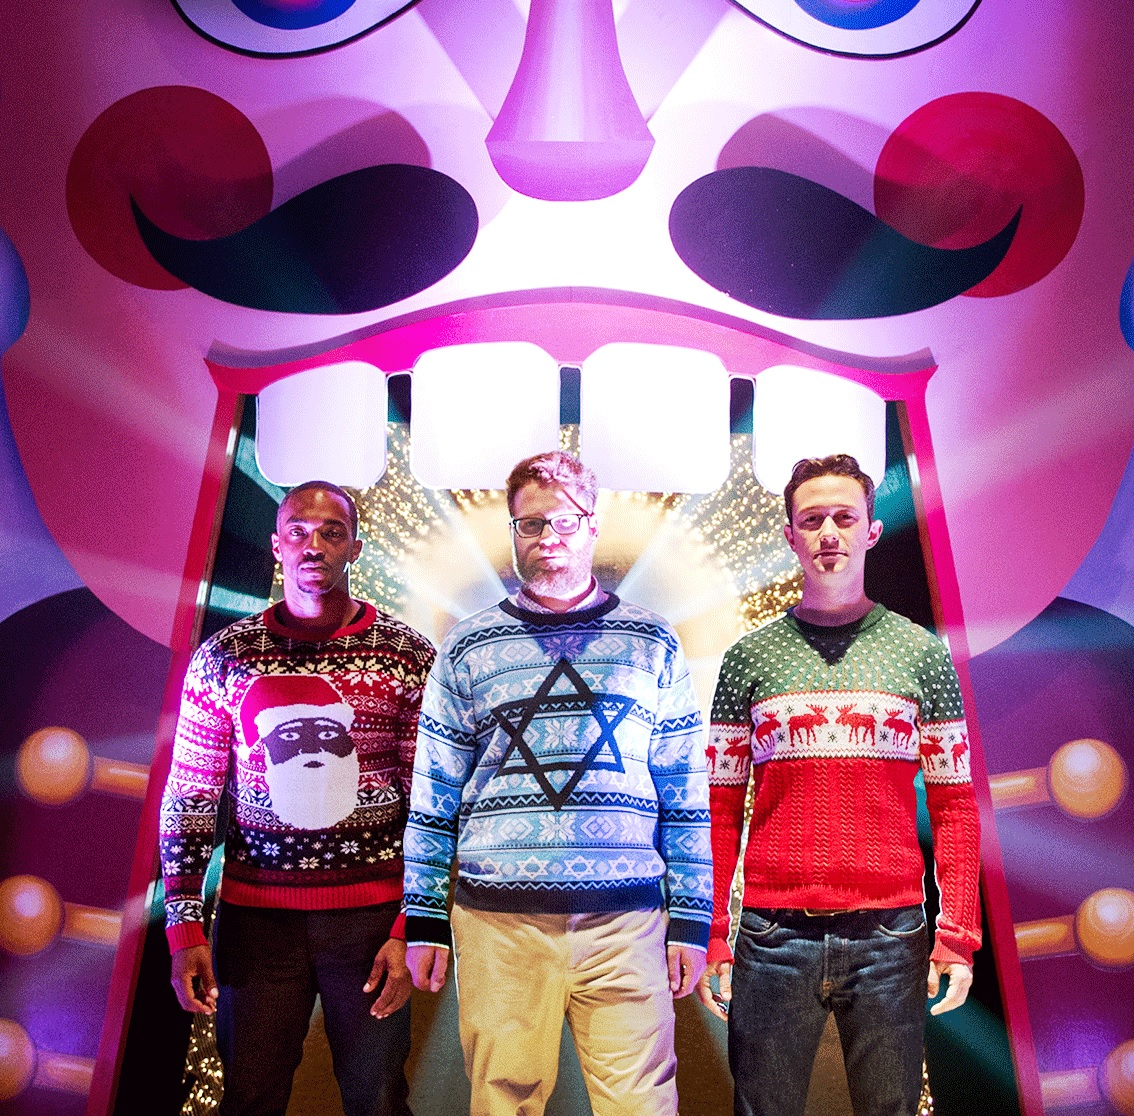 Seth Rogan Christmas.Deck The Halls Our Christmas Jumpers Spotted In New Seth